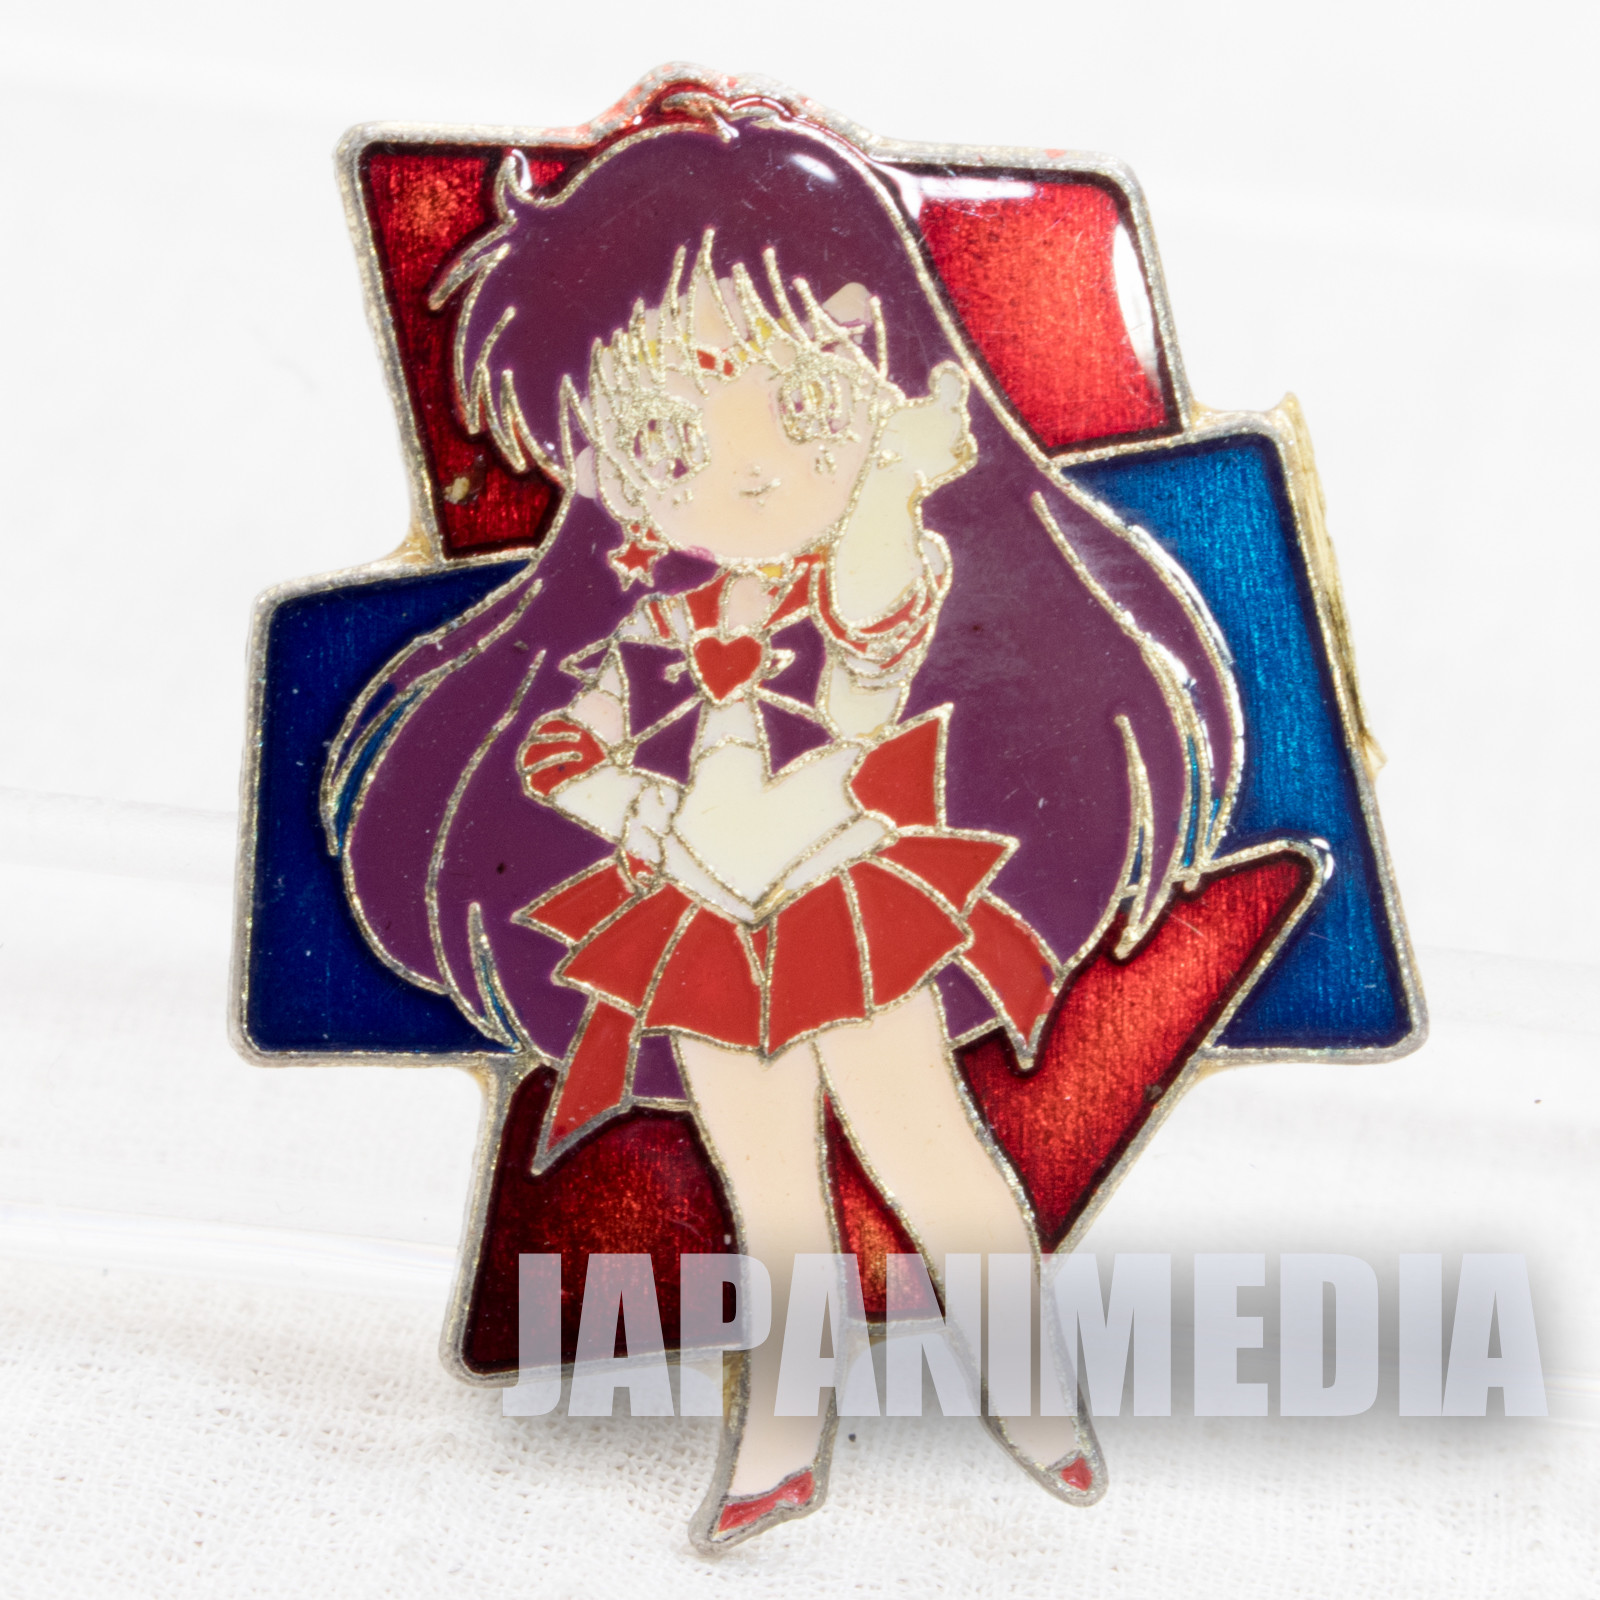 Sailor Moon Sailor Mars (Rei Hino) Metal Pins JAPAN ANIME